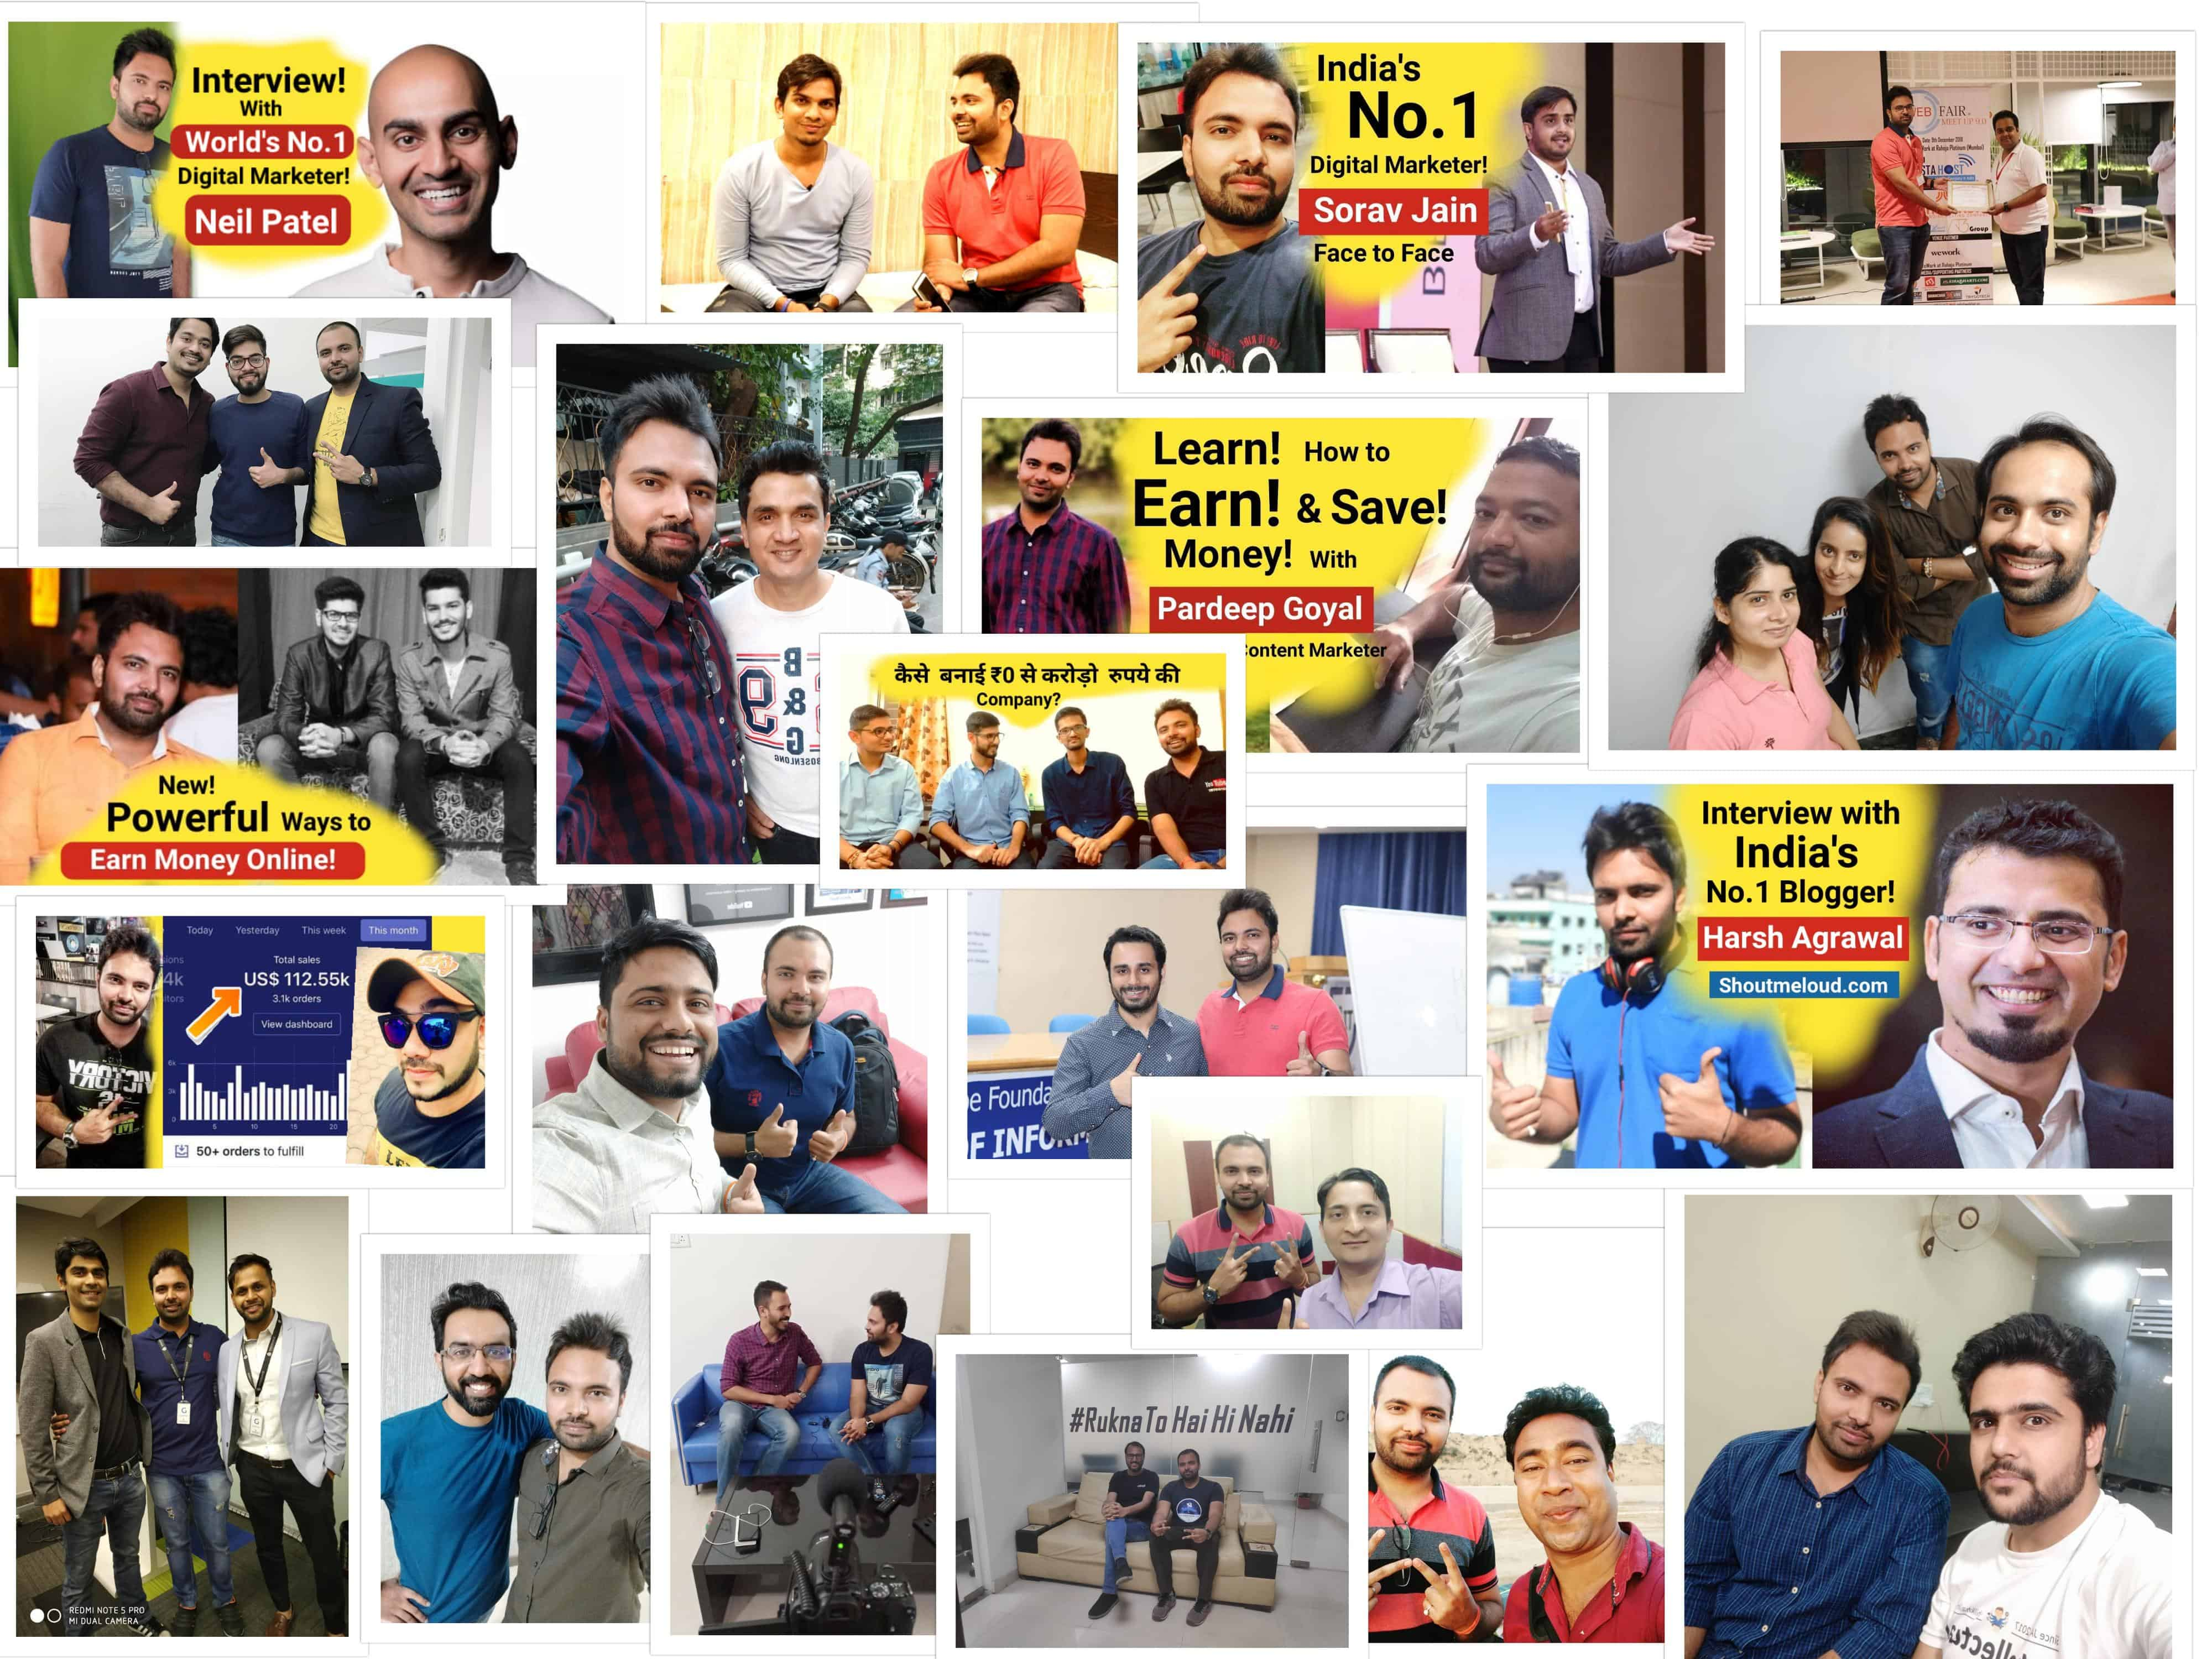 Amit mishra blogger youtuber collabration networking collage neil patel